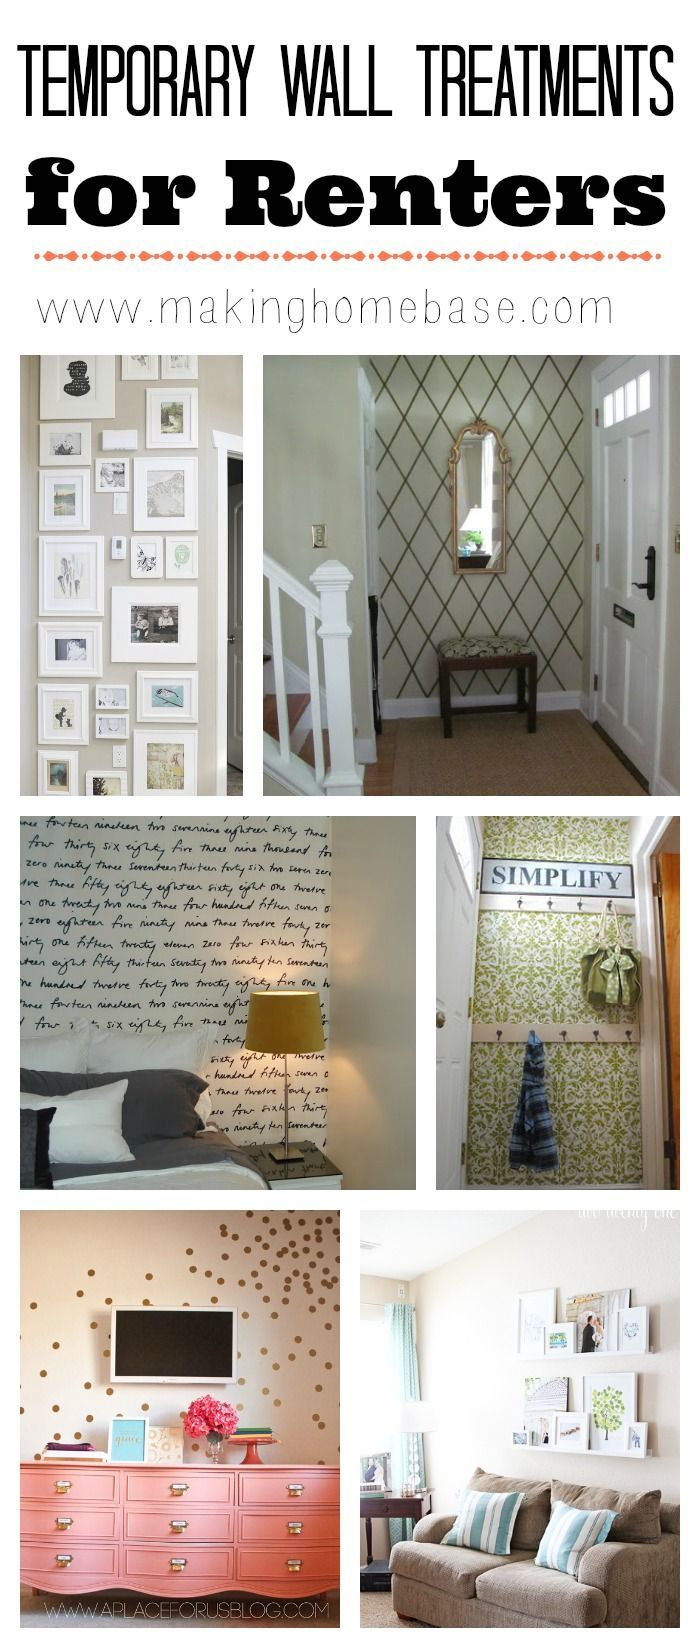 Temporary Wall Treatment Ideas To Spruce Up Your Rental Decorating Apartment Walls Home Decor